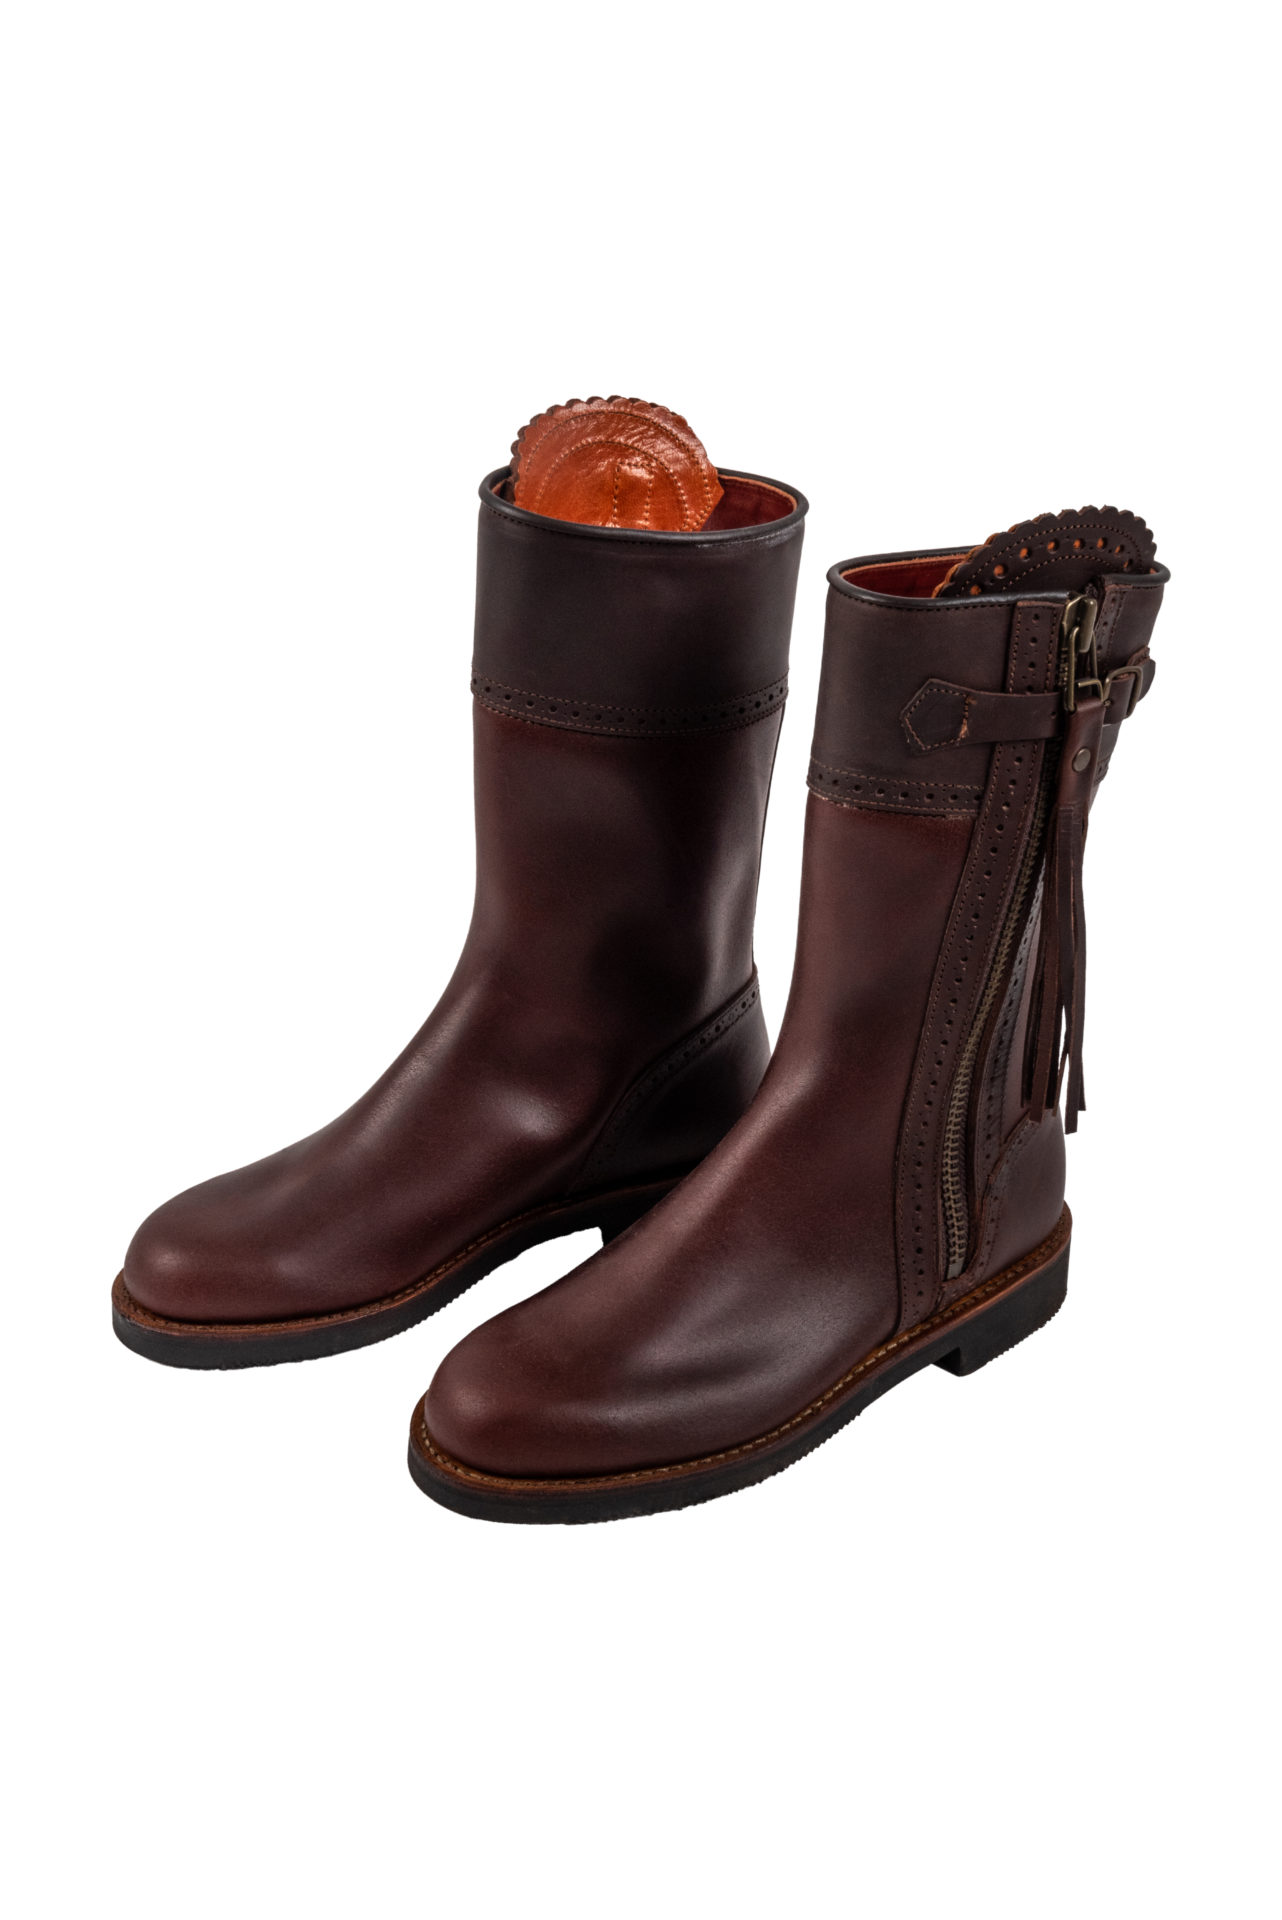 Spanish Leather Riding Boots - Short